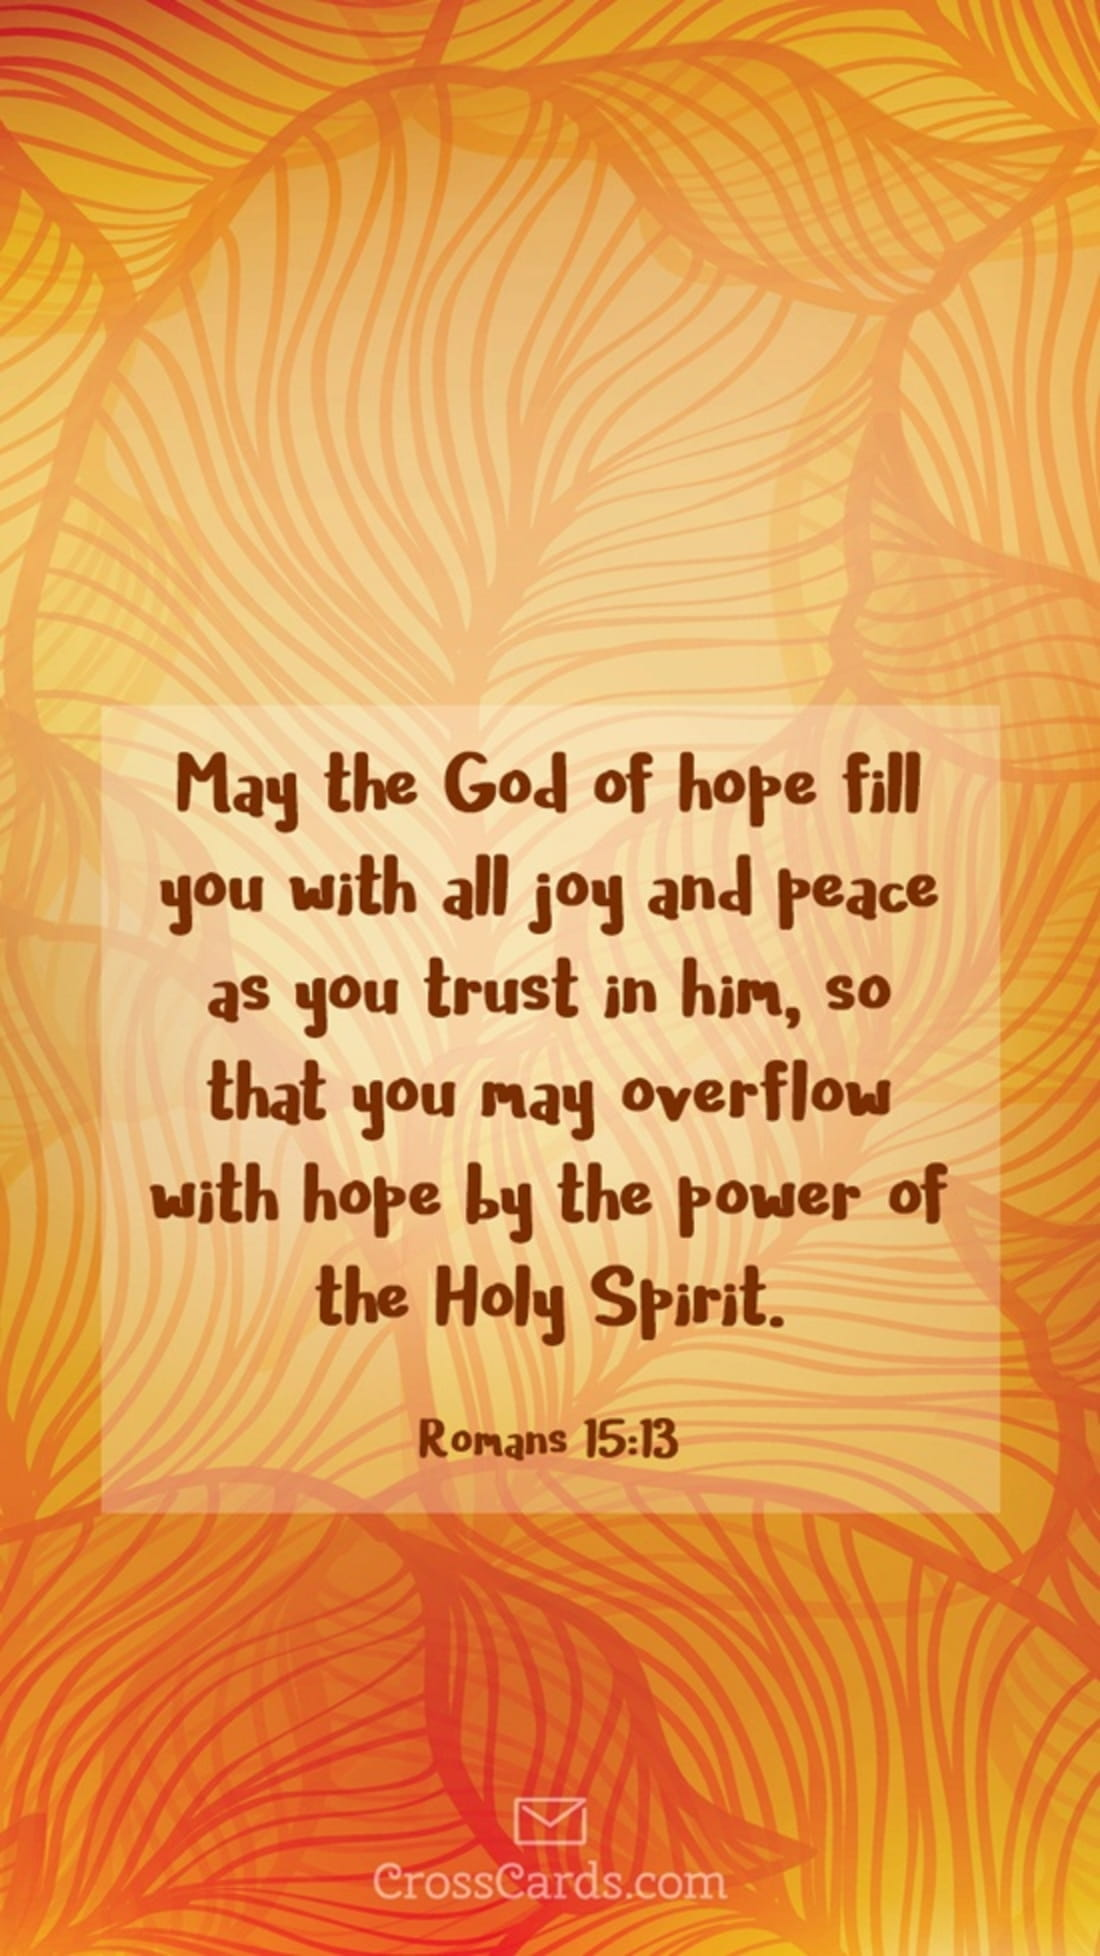 Free Animated Fall Desktop Wallpaper Romans 15 13 Phone Wallpaper And Mobile Background